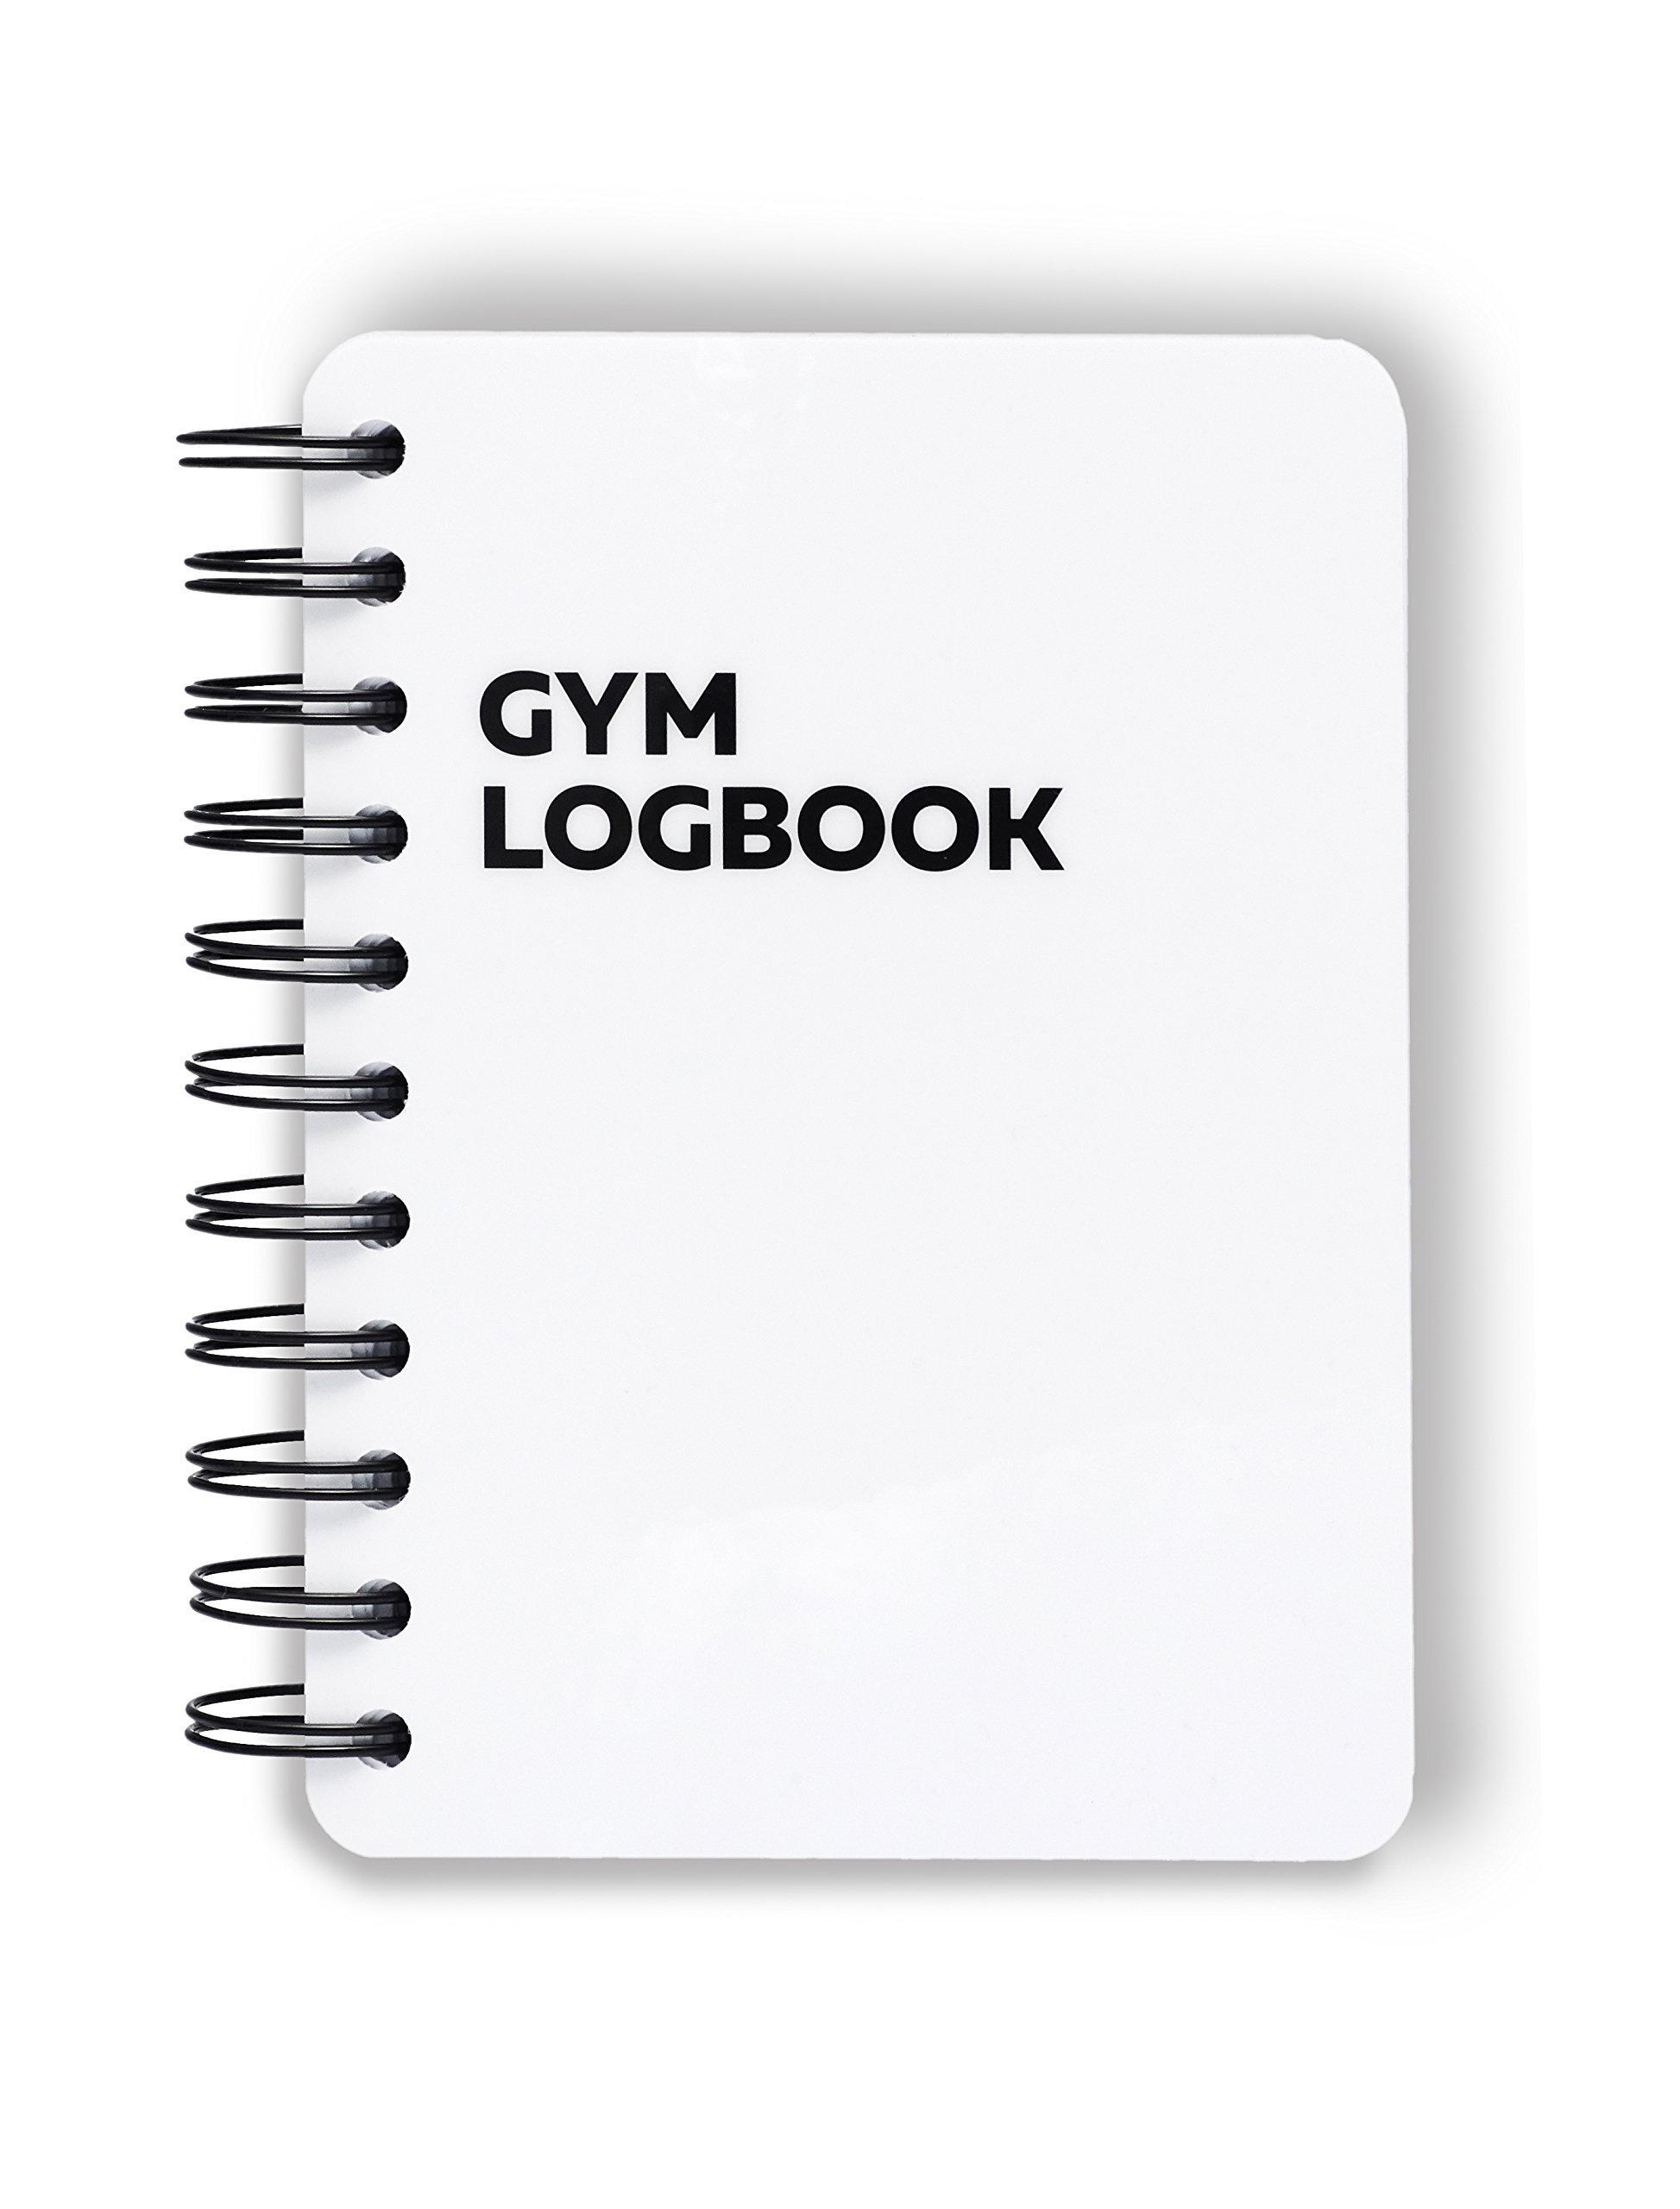 Gym Logbook: 115 Workouts – 4 x 6 inches – Thick Paper, Durable Cover, Round Corners, Wire-bound – Stylish, Minimalistic And Easy-To-Use Undated Workout Journal